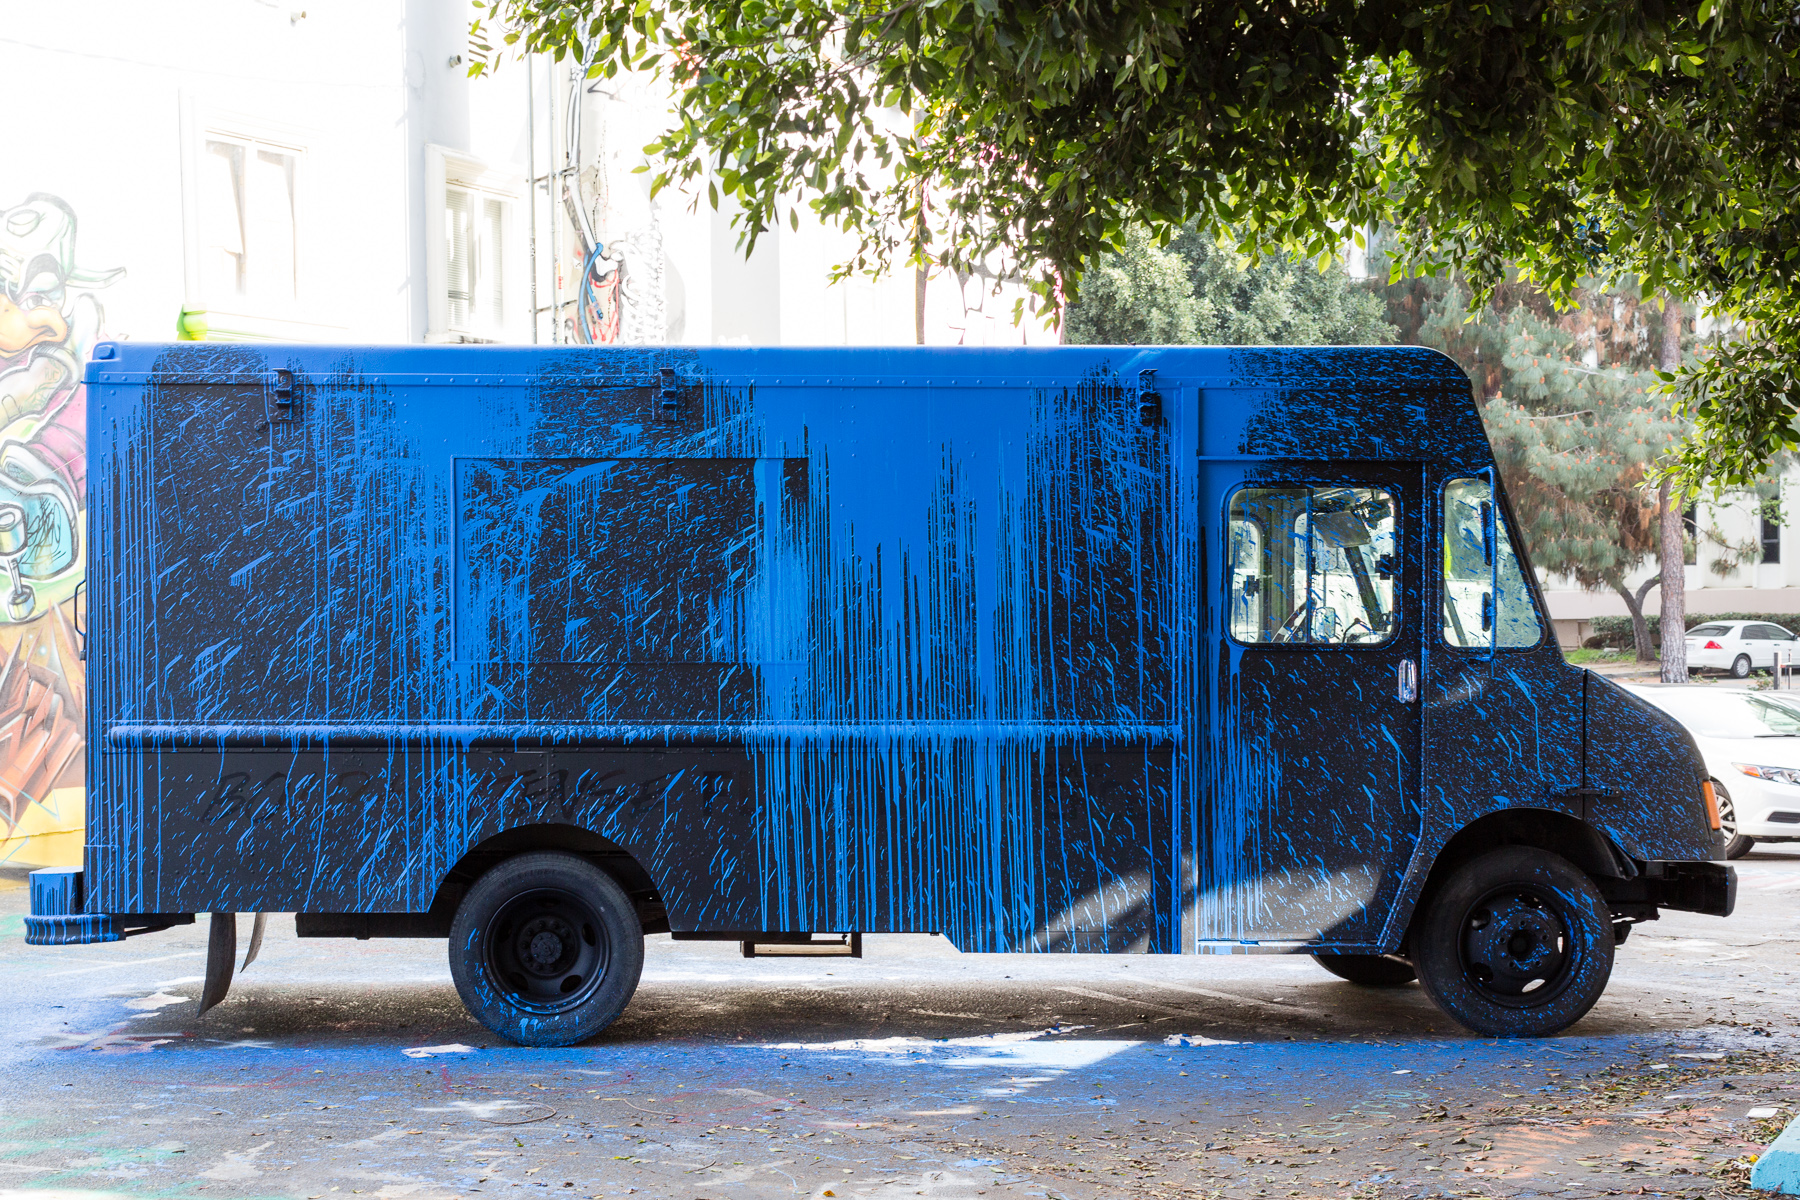 krink gatorade expression of bold and intense flavors fierce collective truck